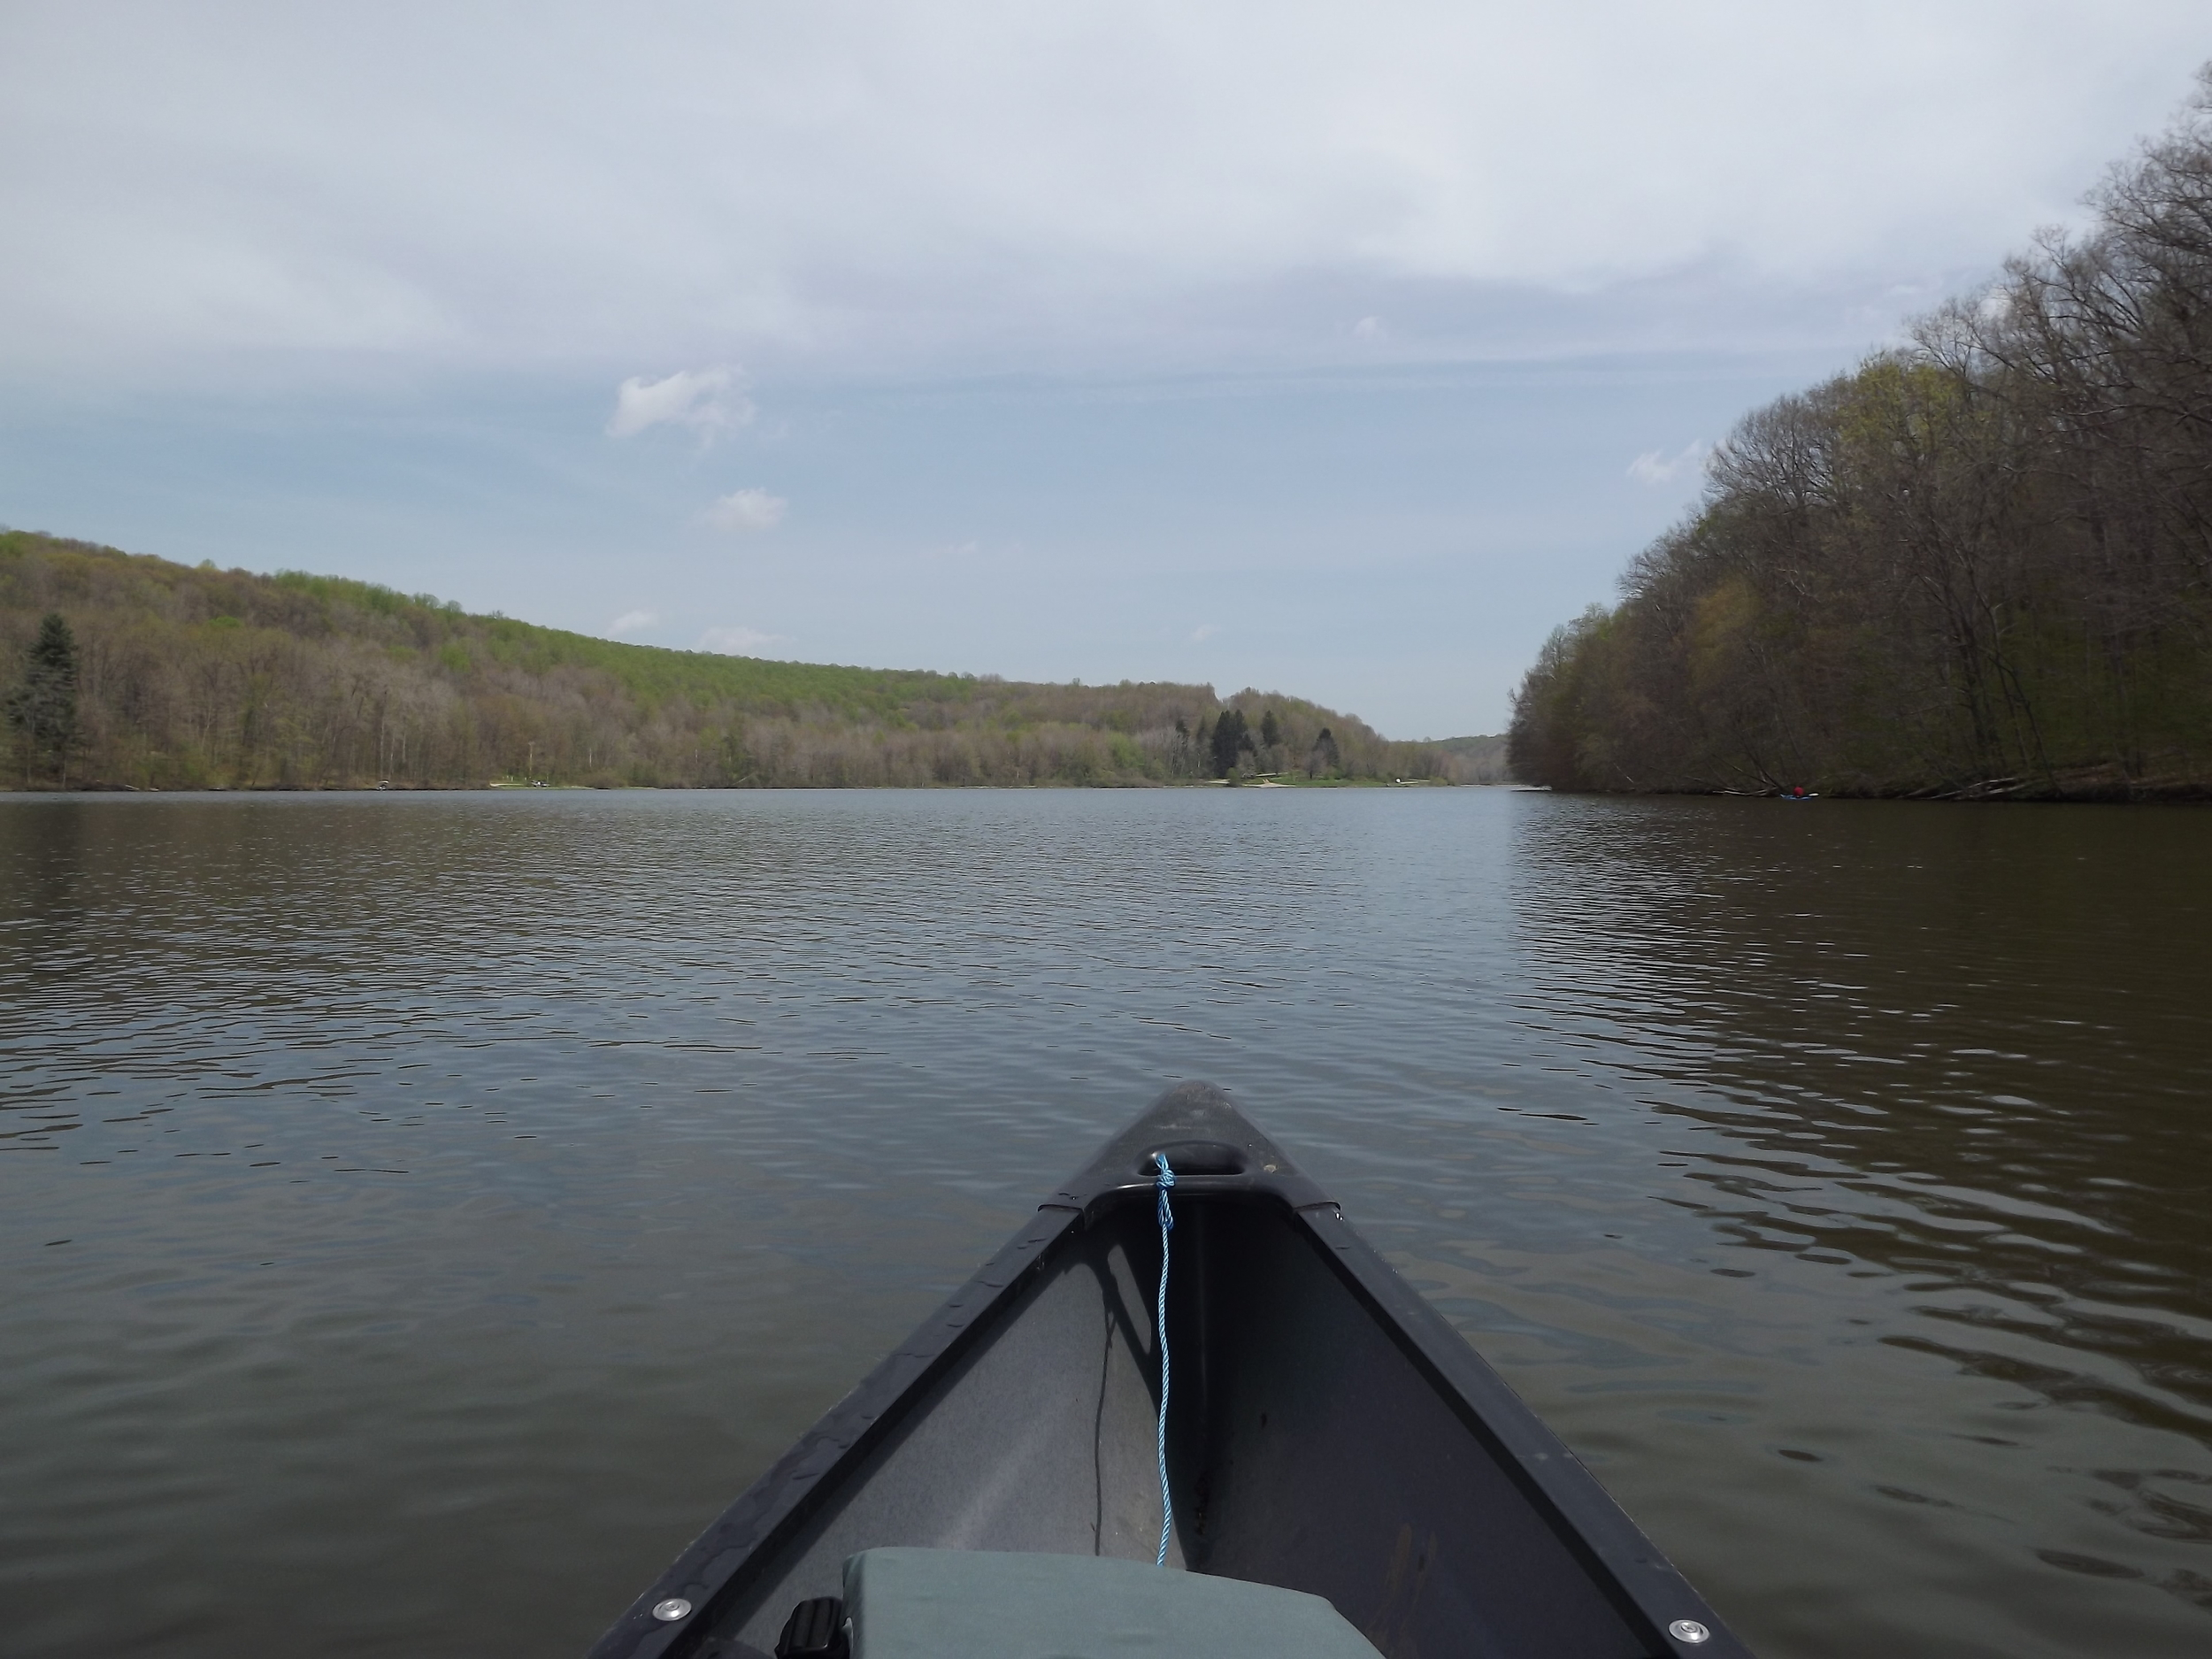 We started our paddle on the lake and headed up to Muddy Creek on the northernmost finger of the eastern end of the lake.  The area along the lake is mostly wooded but is surrounded by rolling hills dotted with farms adding a very rural feel to the area.